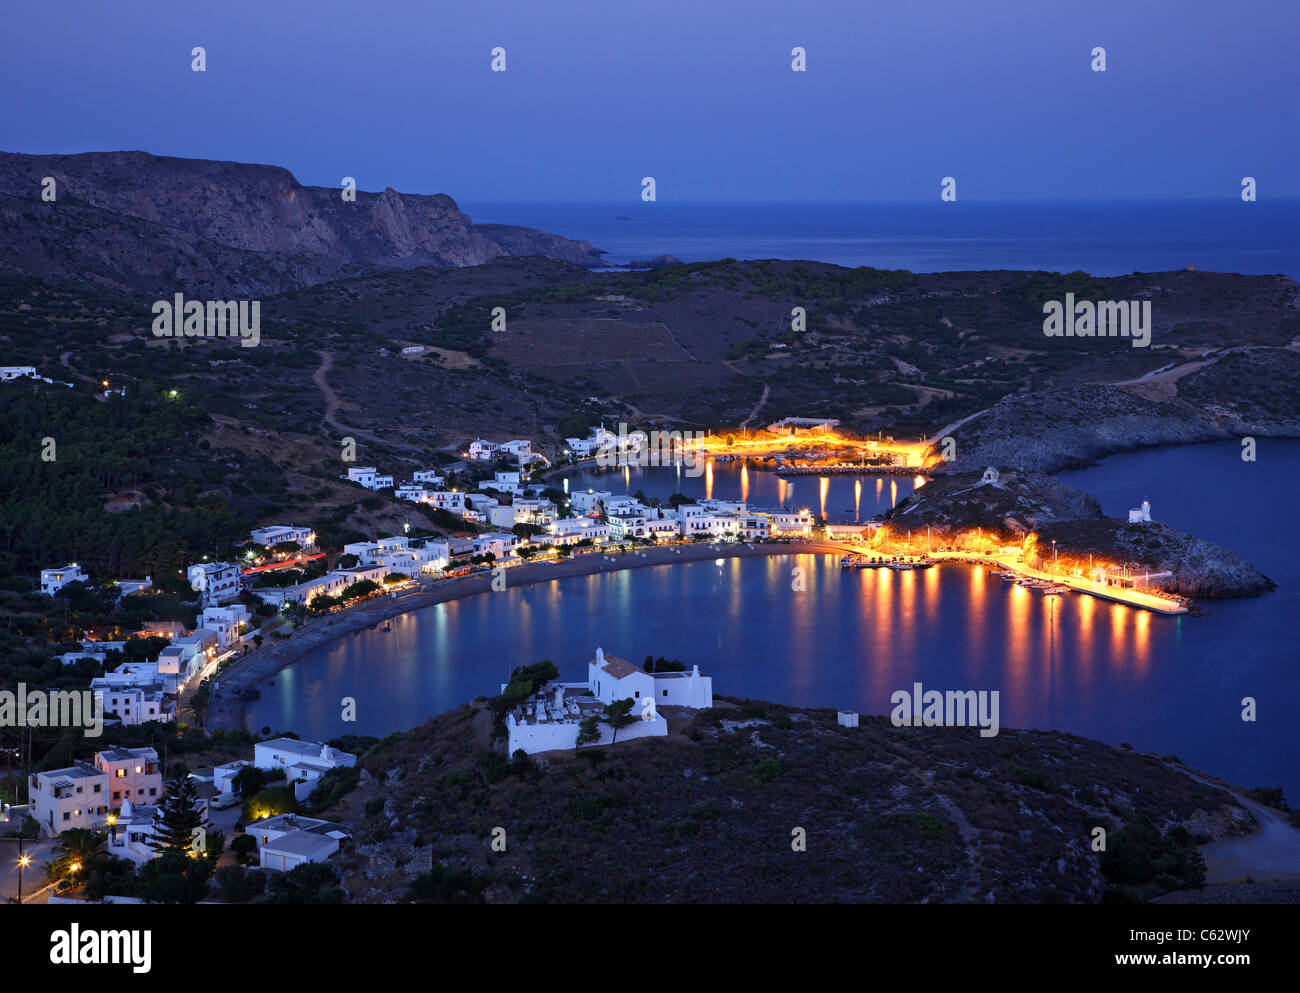 Panoramic night view of Kapsali village from Hora (the 'capital') of Kythira (or 'Cythera' island, - Stock Image